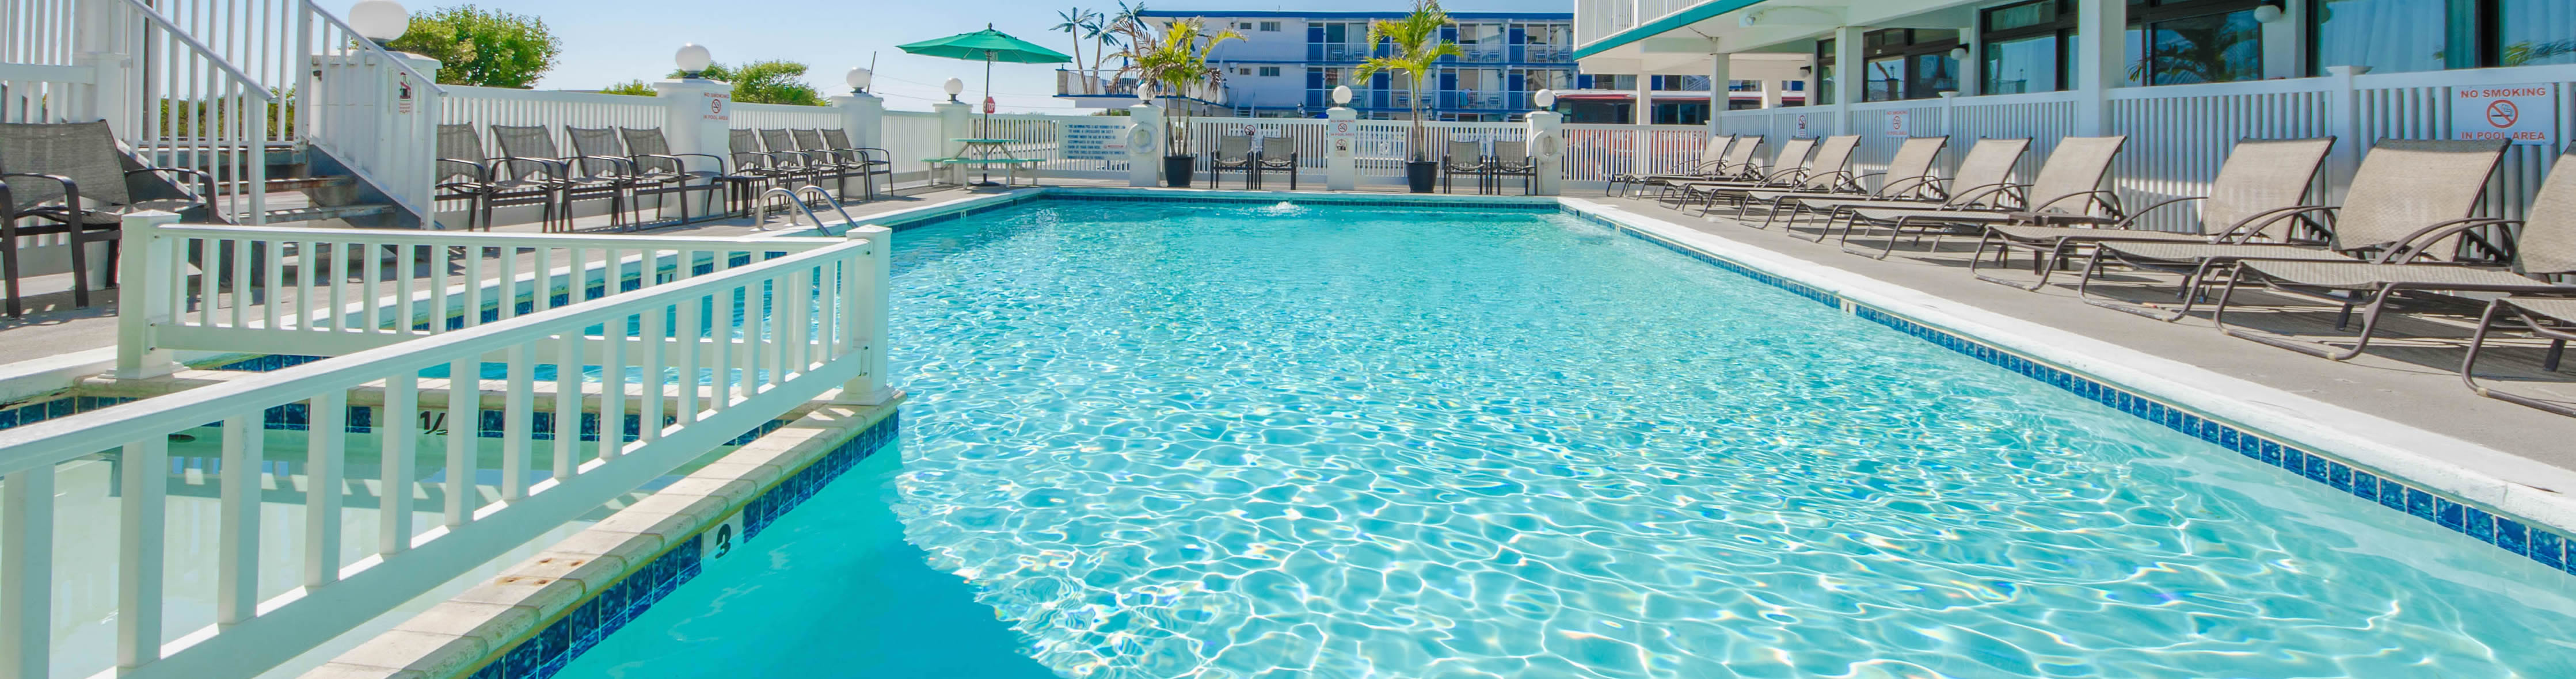 Welcome To The Waters Edge Ocean Resort In Wildwood Crest New Jersey